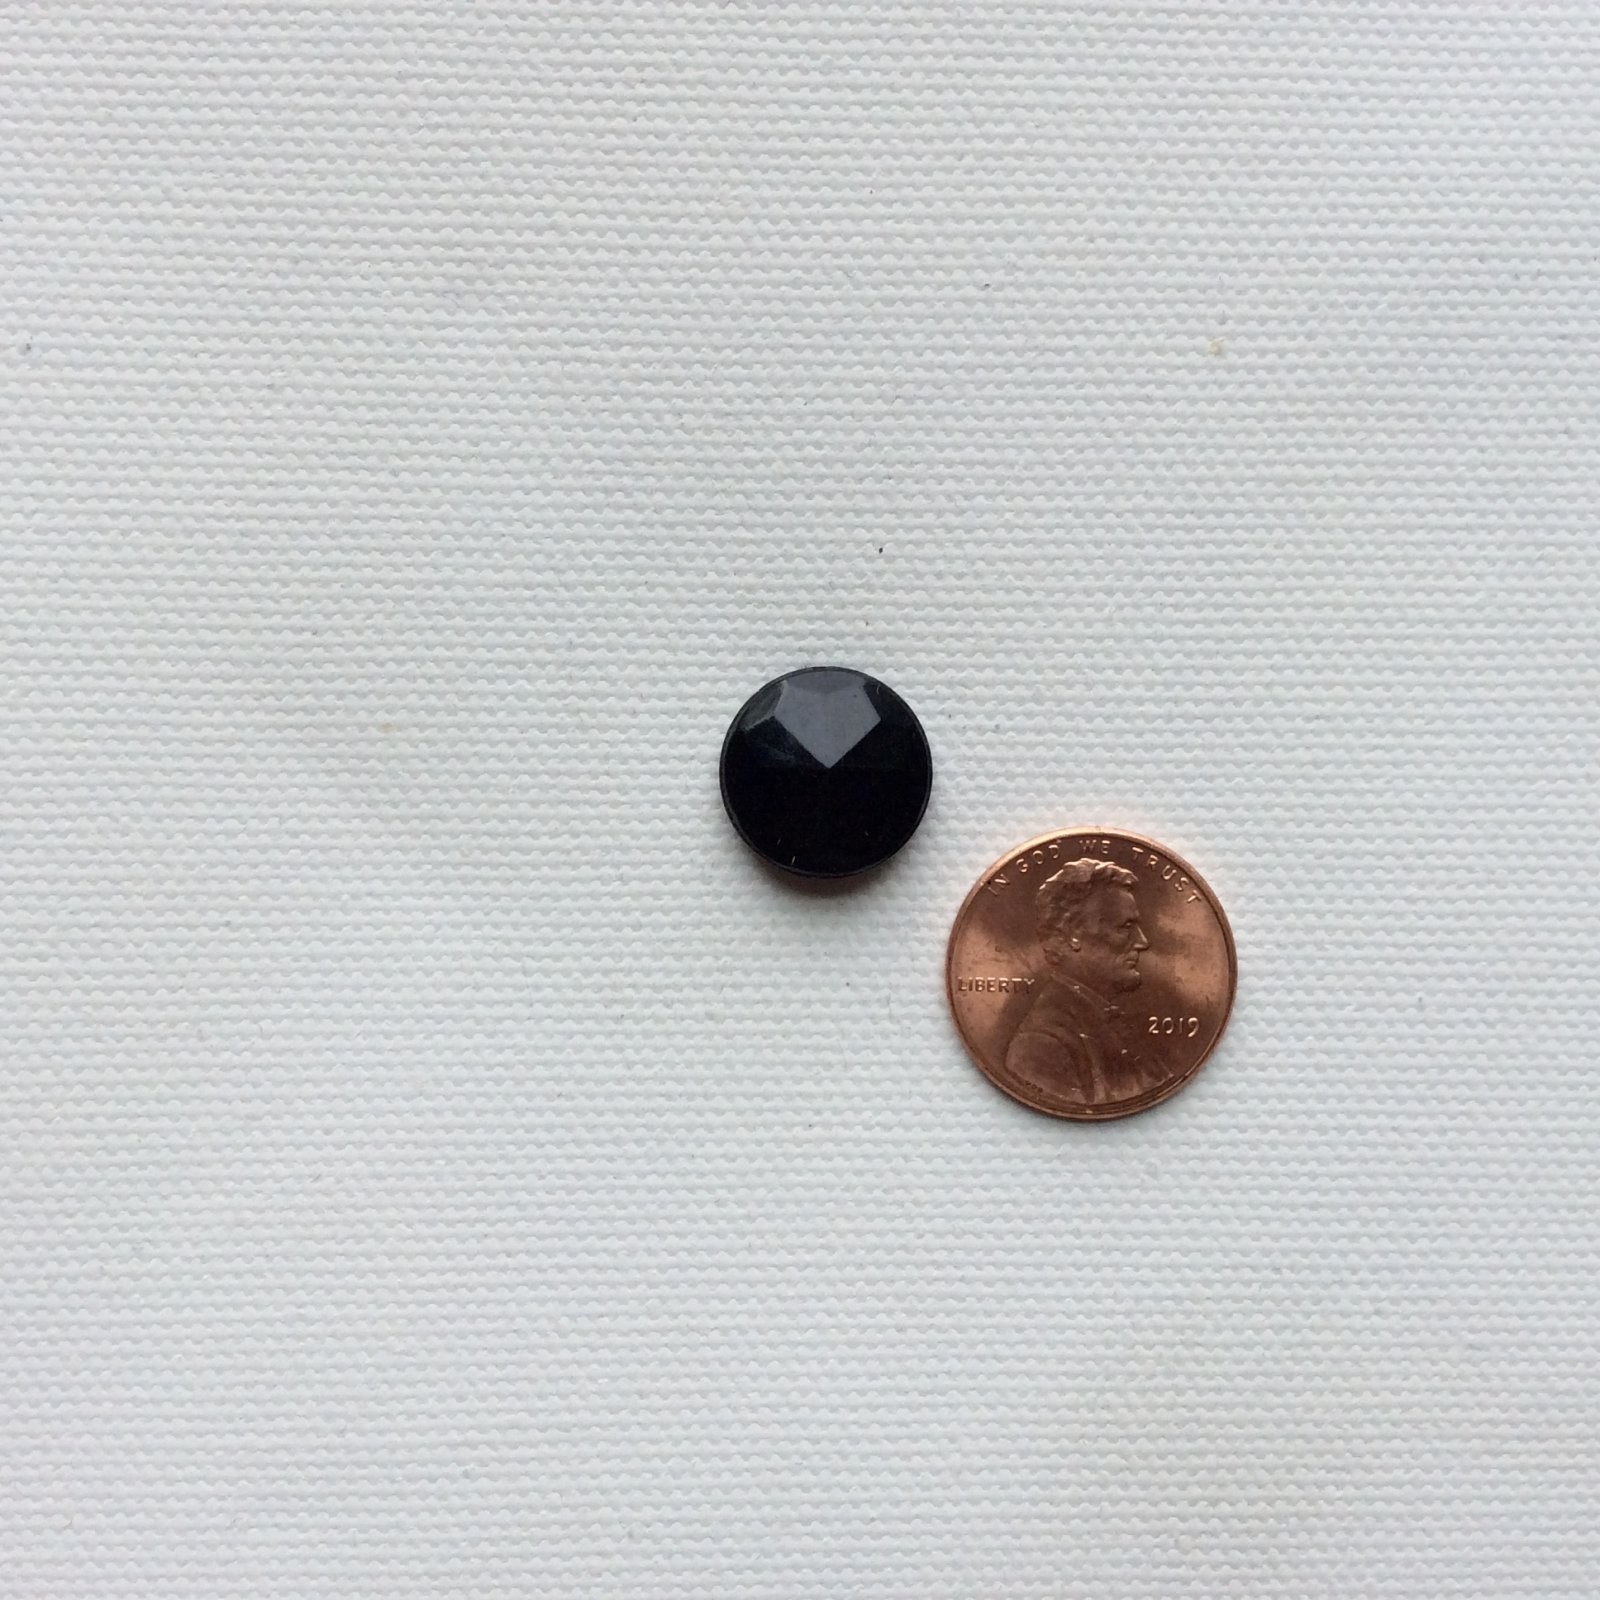 Small Round Antique Faceted Black Glass Metal Shank Button VB005